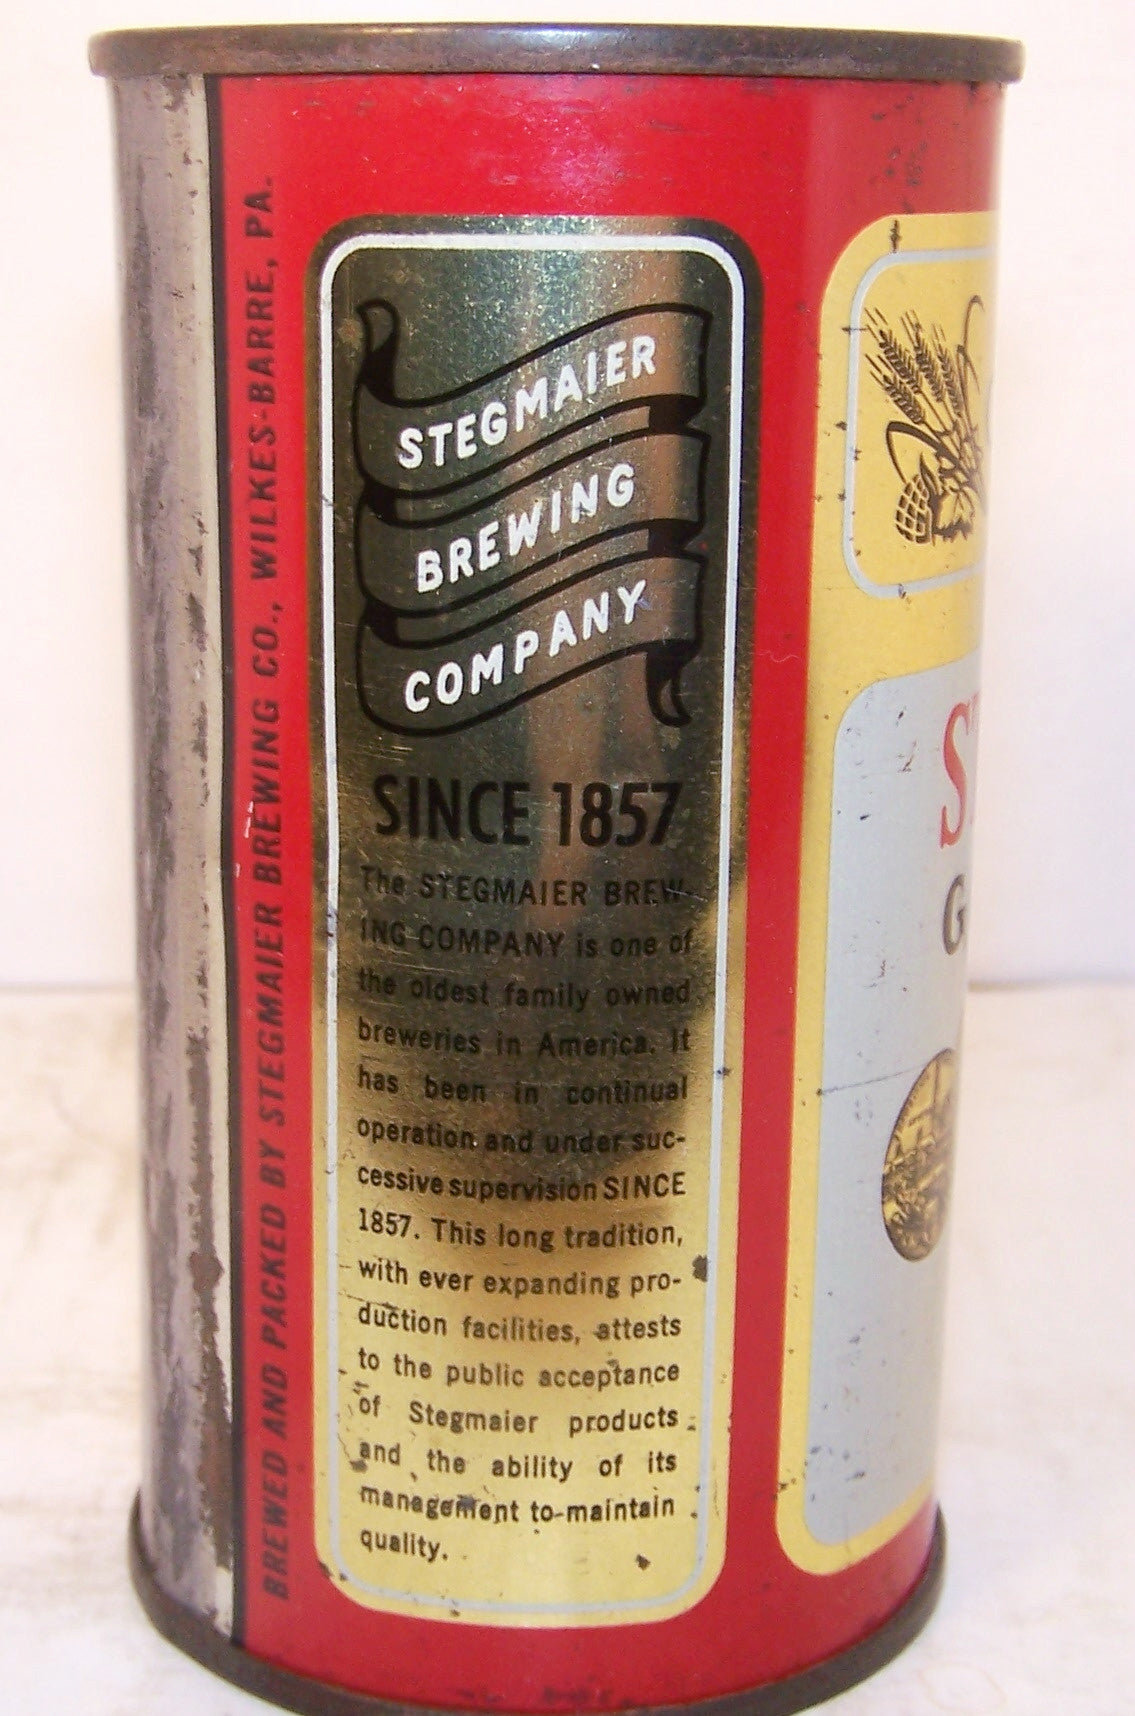 Stegmaier Gold Medal Beer, USBC 136-2, Grade 1/1+ Sold on 01/05/18